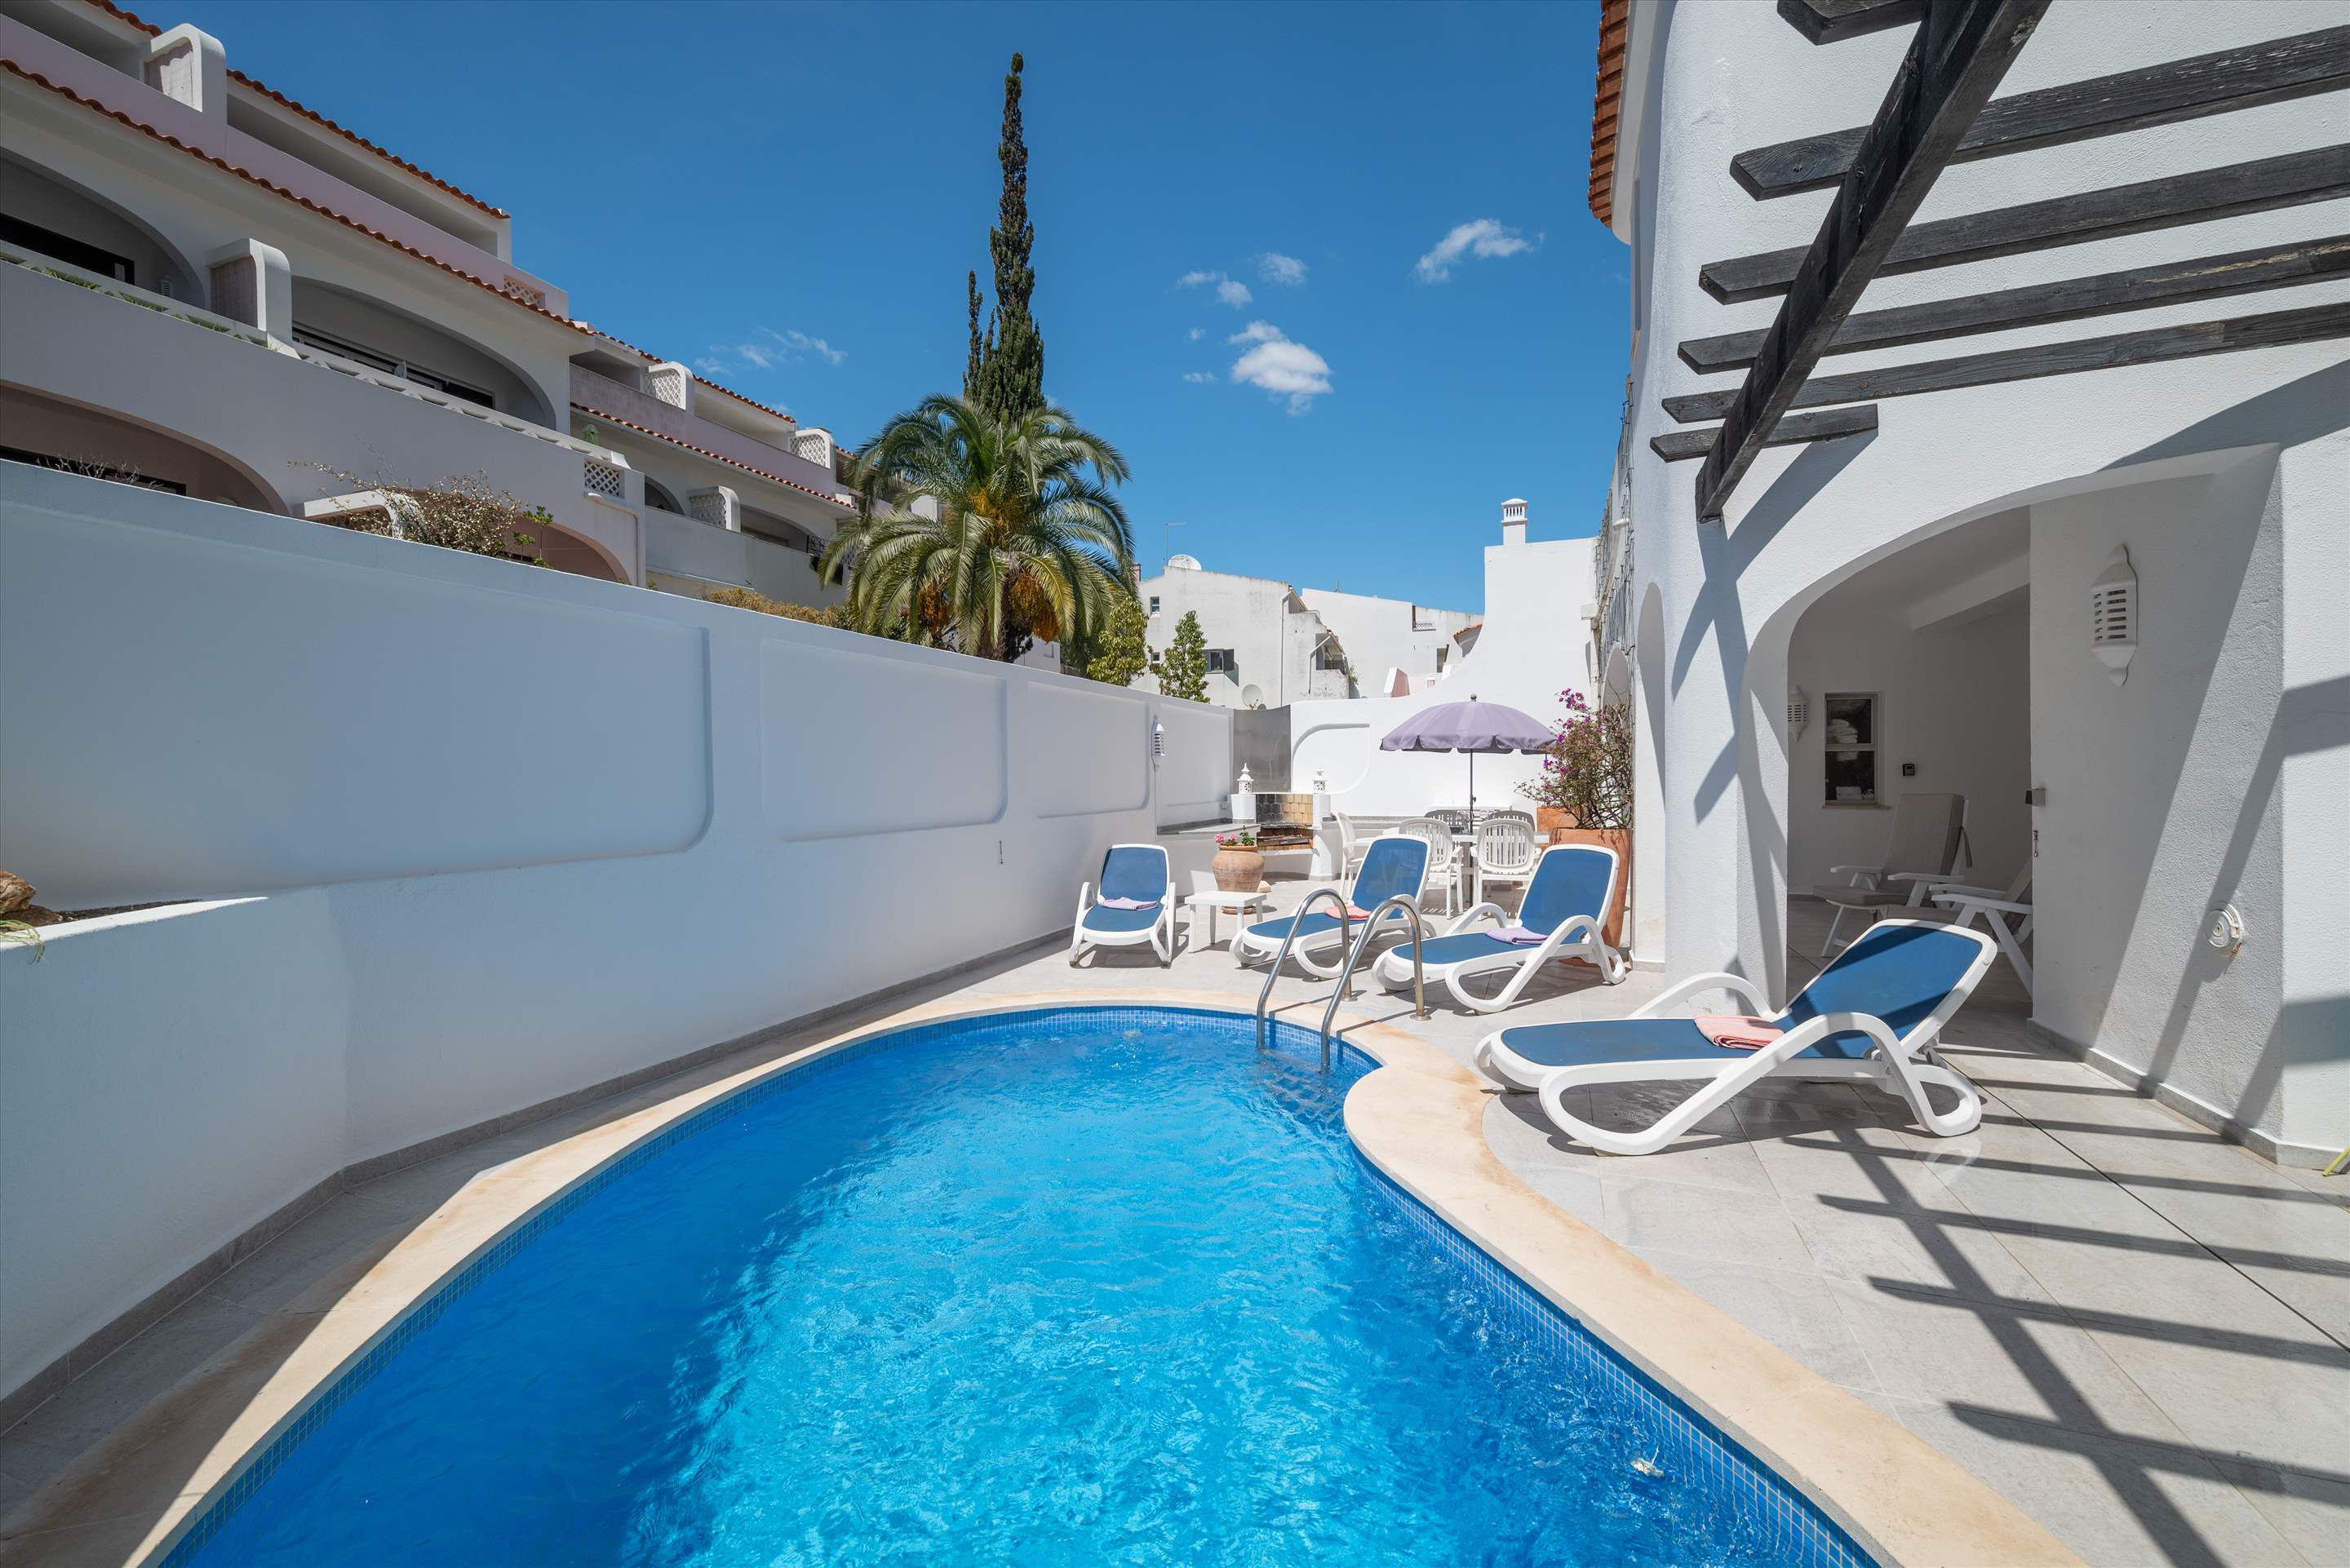 Casa Bella, 3 bedroom apartment in Vale do Lobo, Algarve